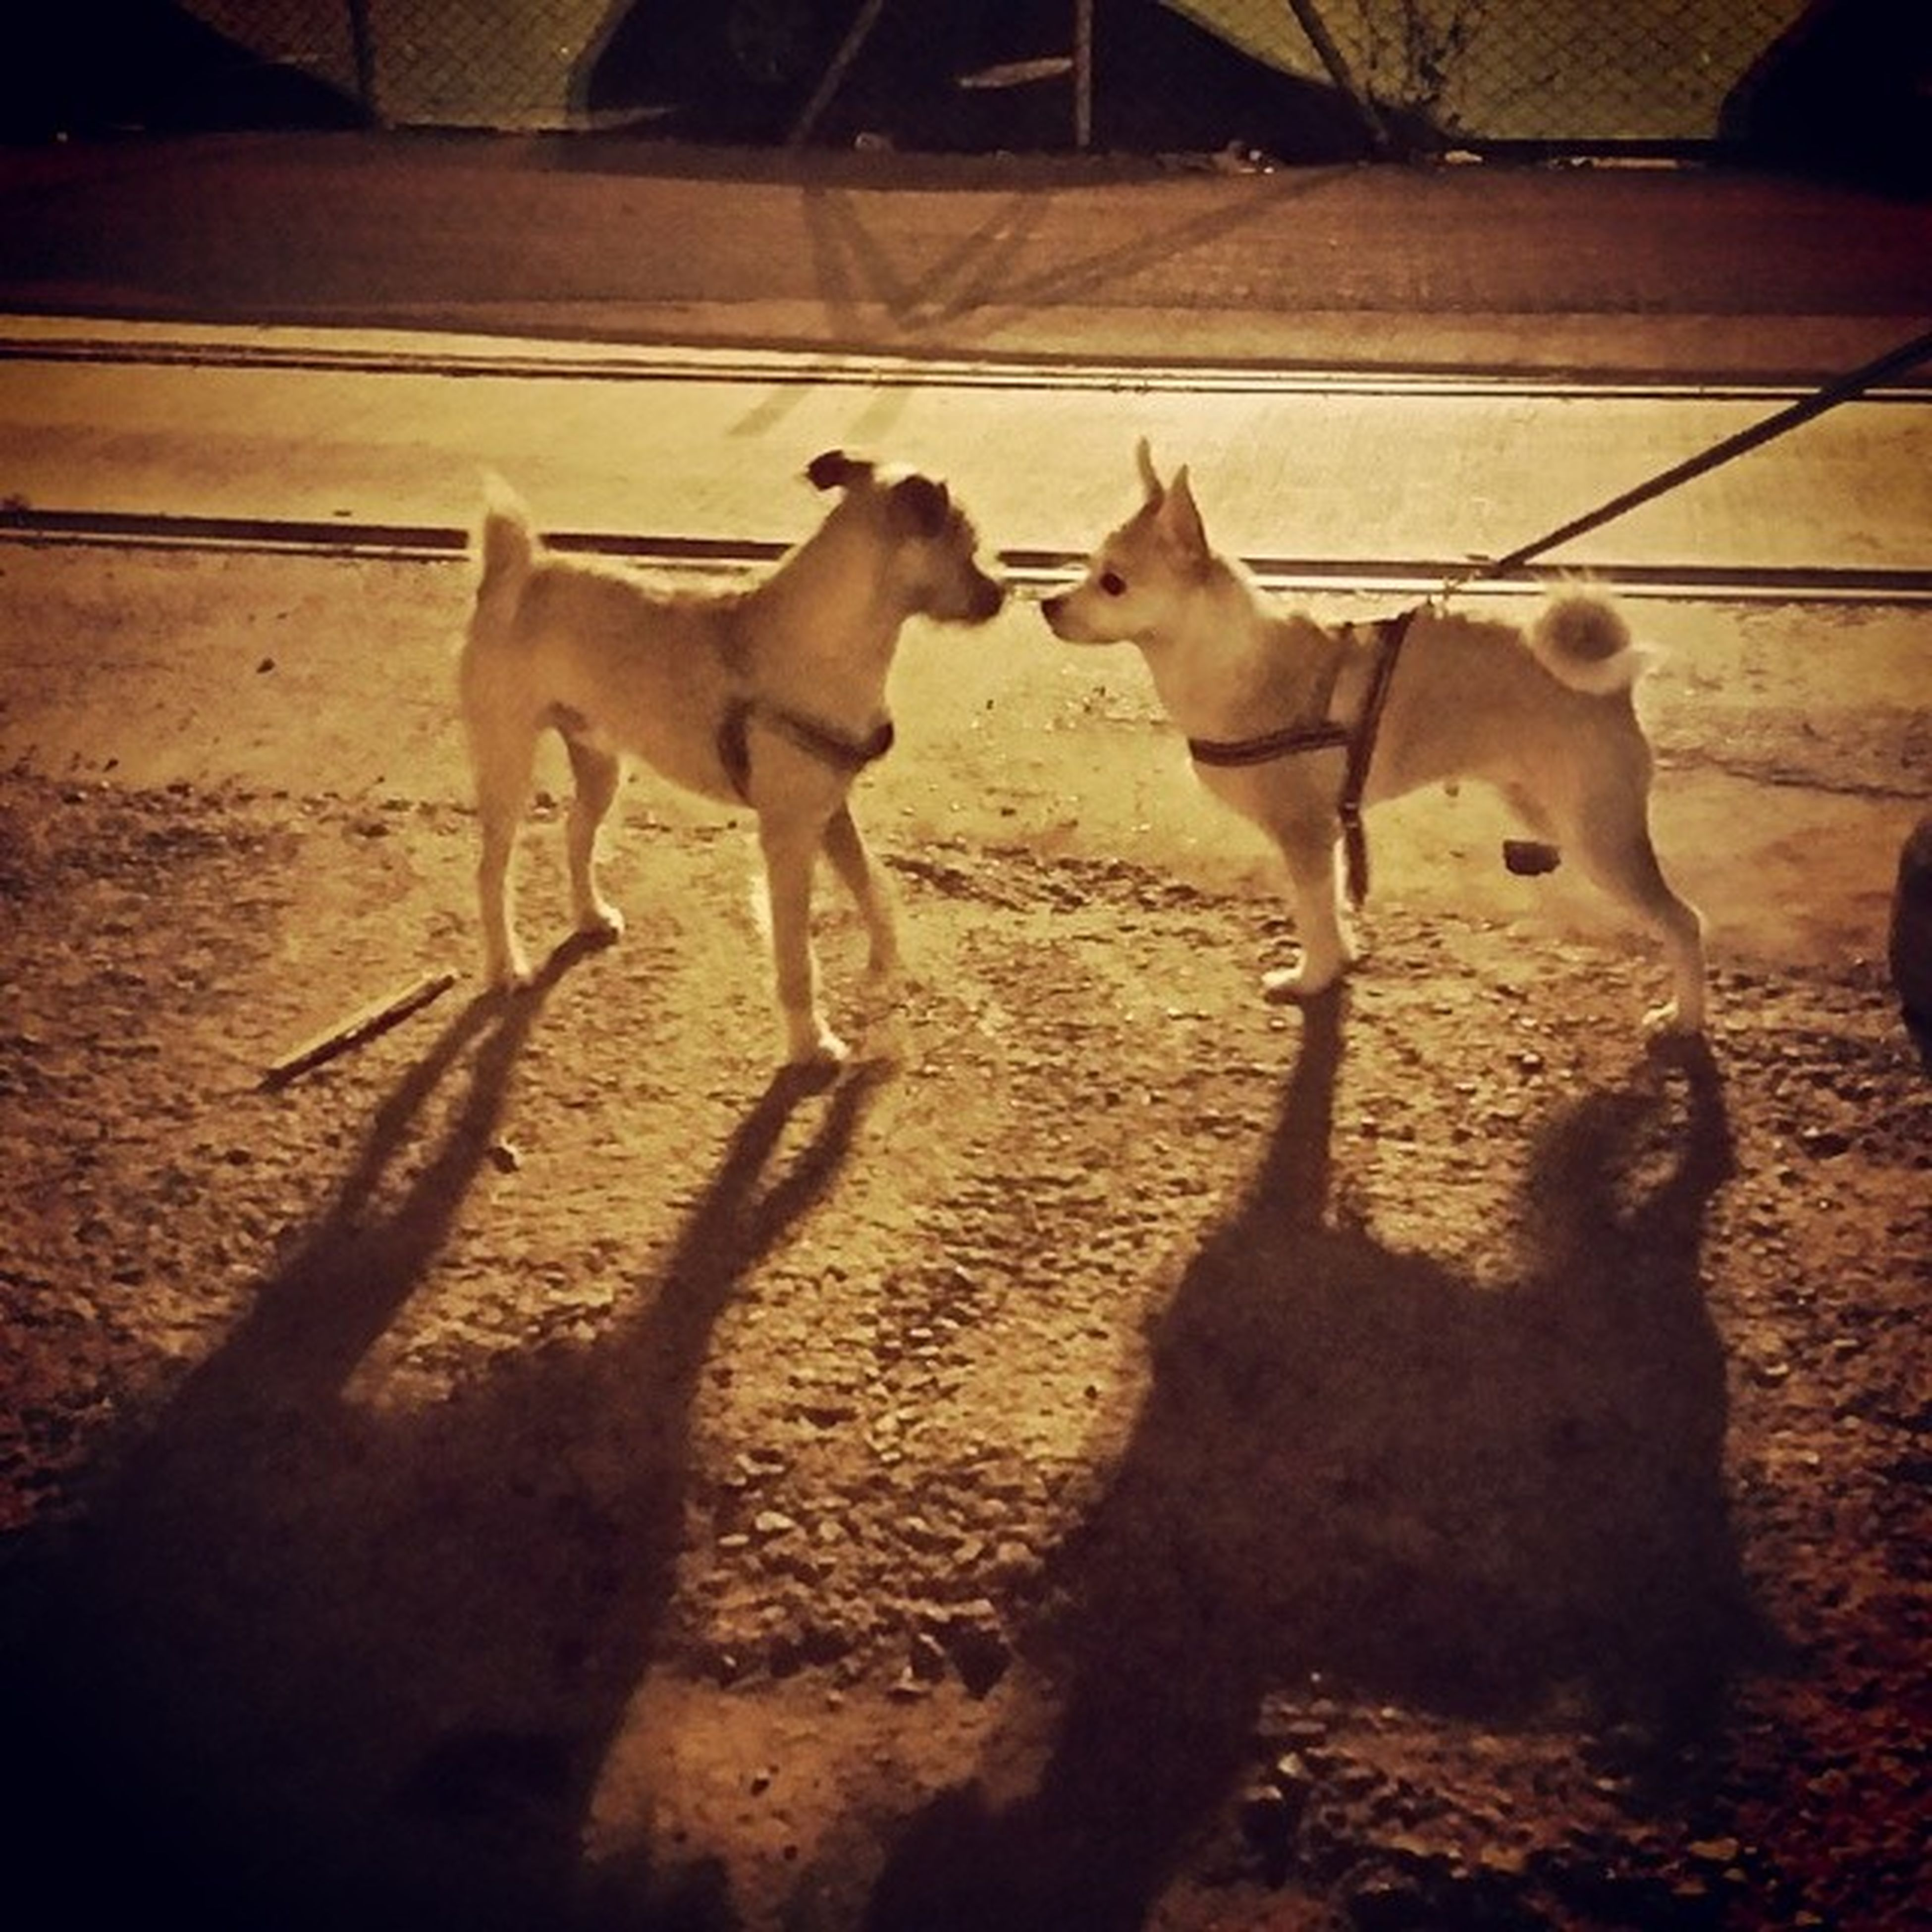 domestic animals, animal themes, mammal, dog, horse, livestock, standing, shadow, full length, sand, one animal, sunlight, pets, two animals, walking, herbivorous, working animal, day, outdoors, street